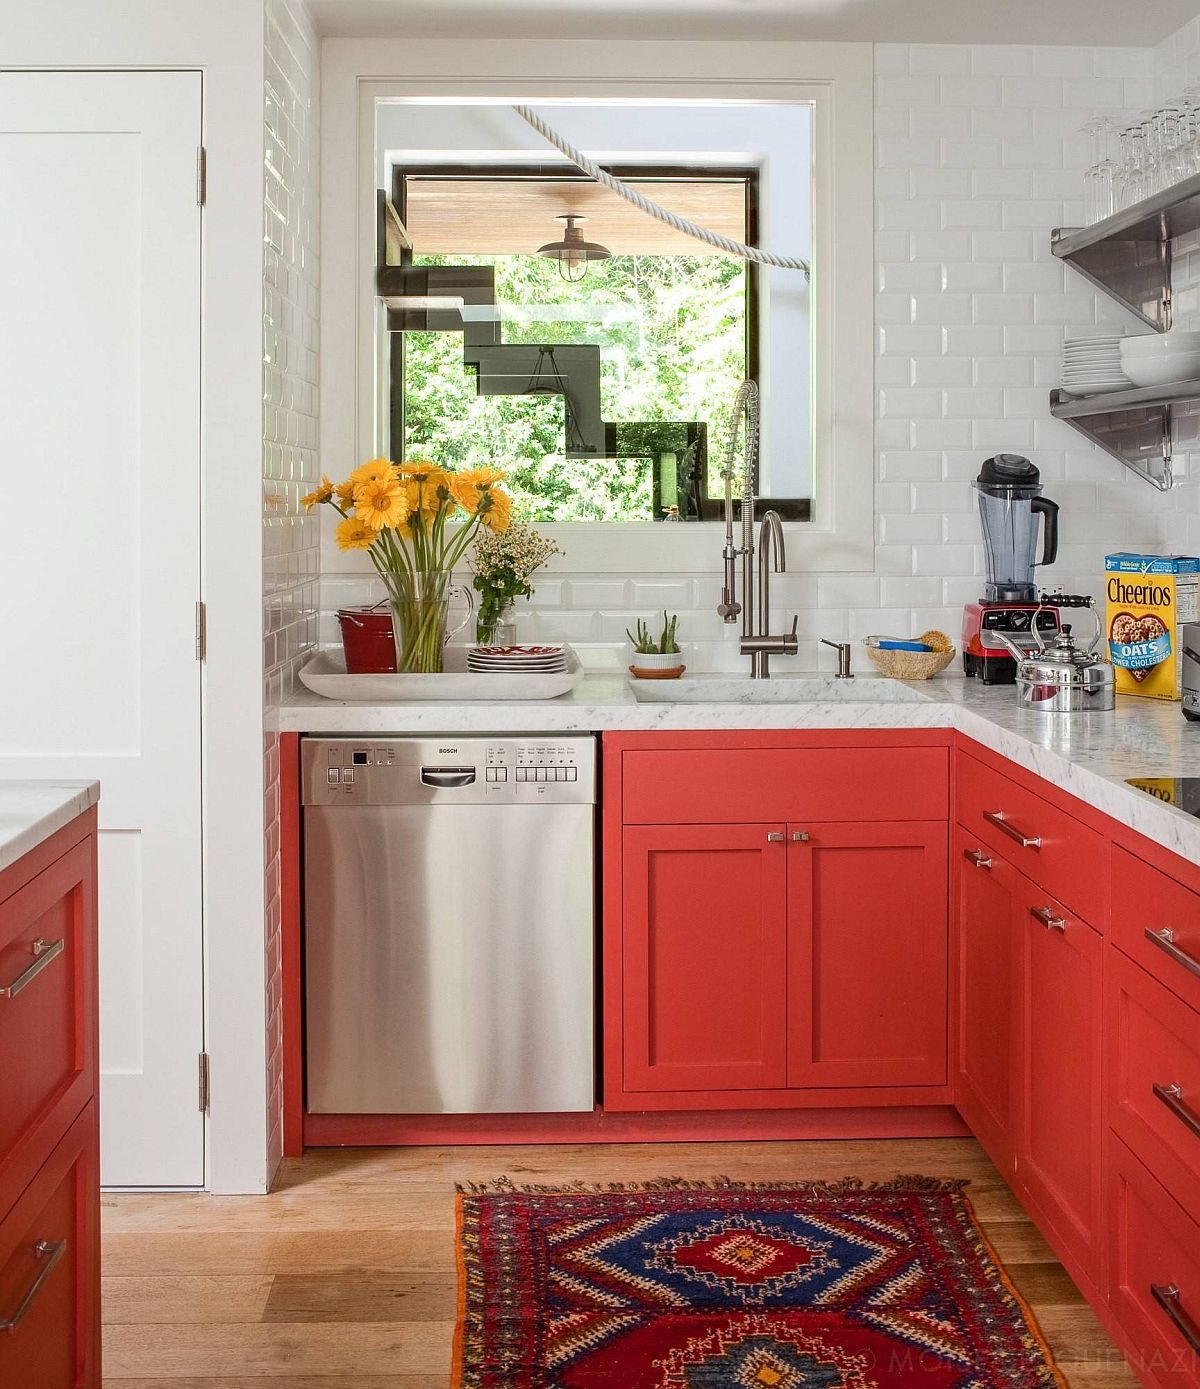 Small-beach-style-kitchen-with-bright-orangy-red-cabinets-and-white-backsplash-15505